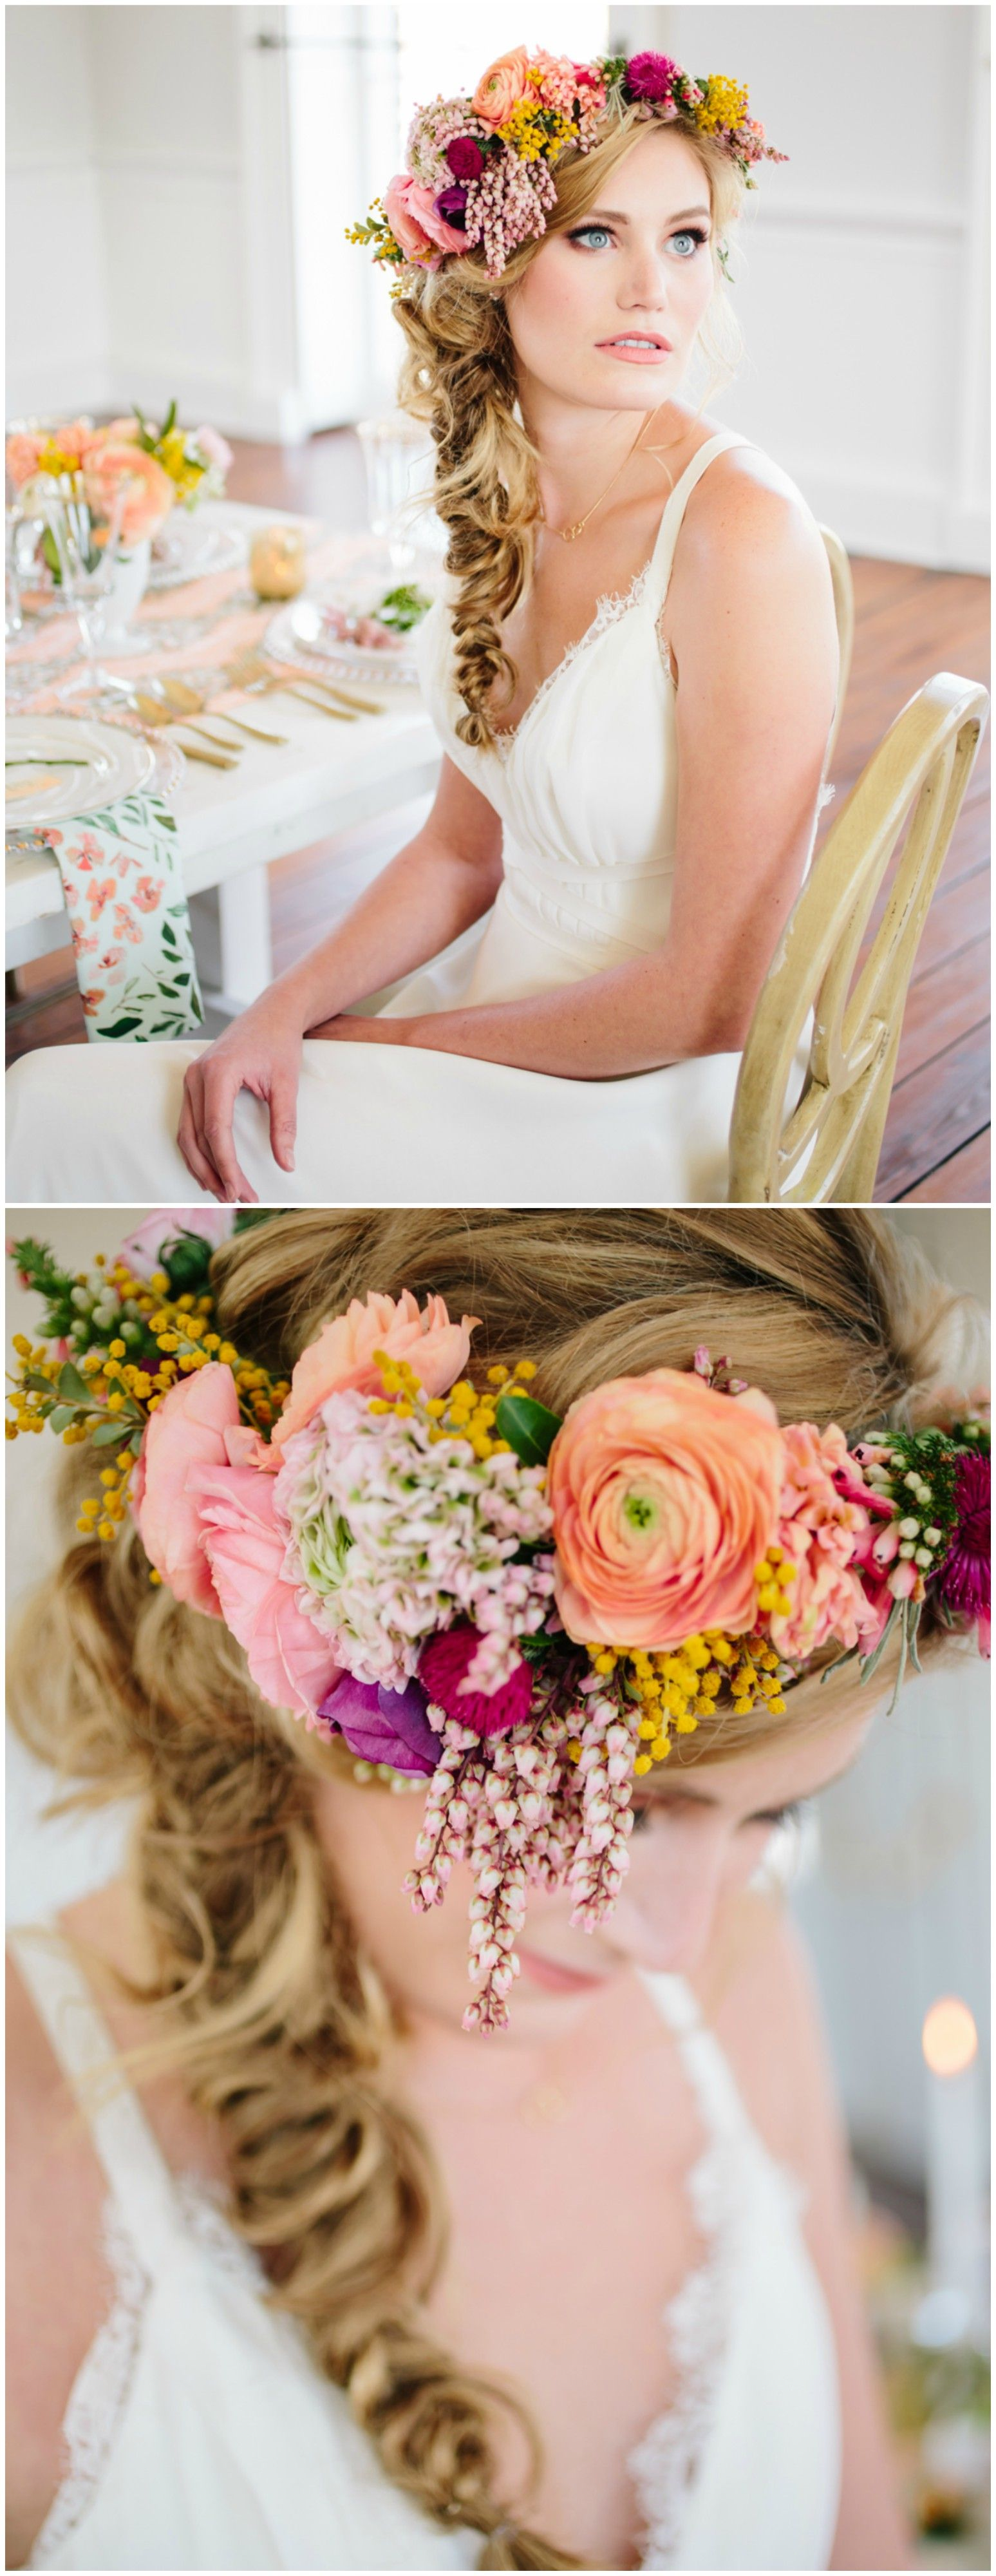 Wedding flower crowns wedding pinterest flower crowns bridal flower crown colorful flowers fishtail braid wedding hair ideas riverland dhlflorist Images